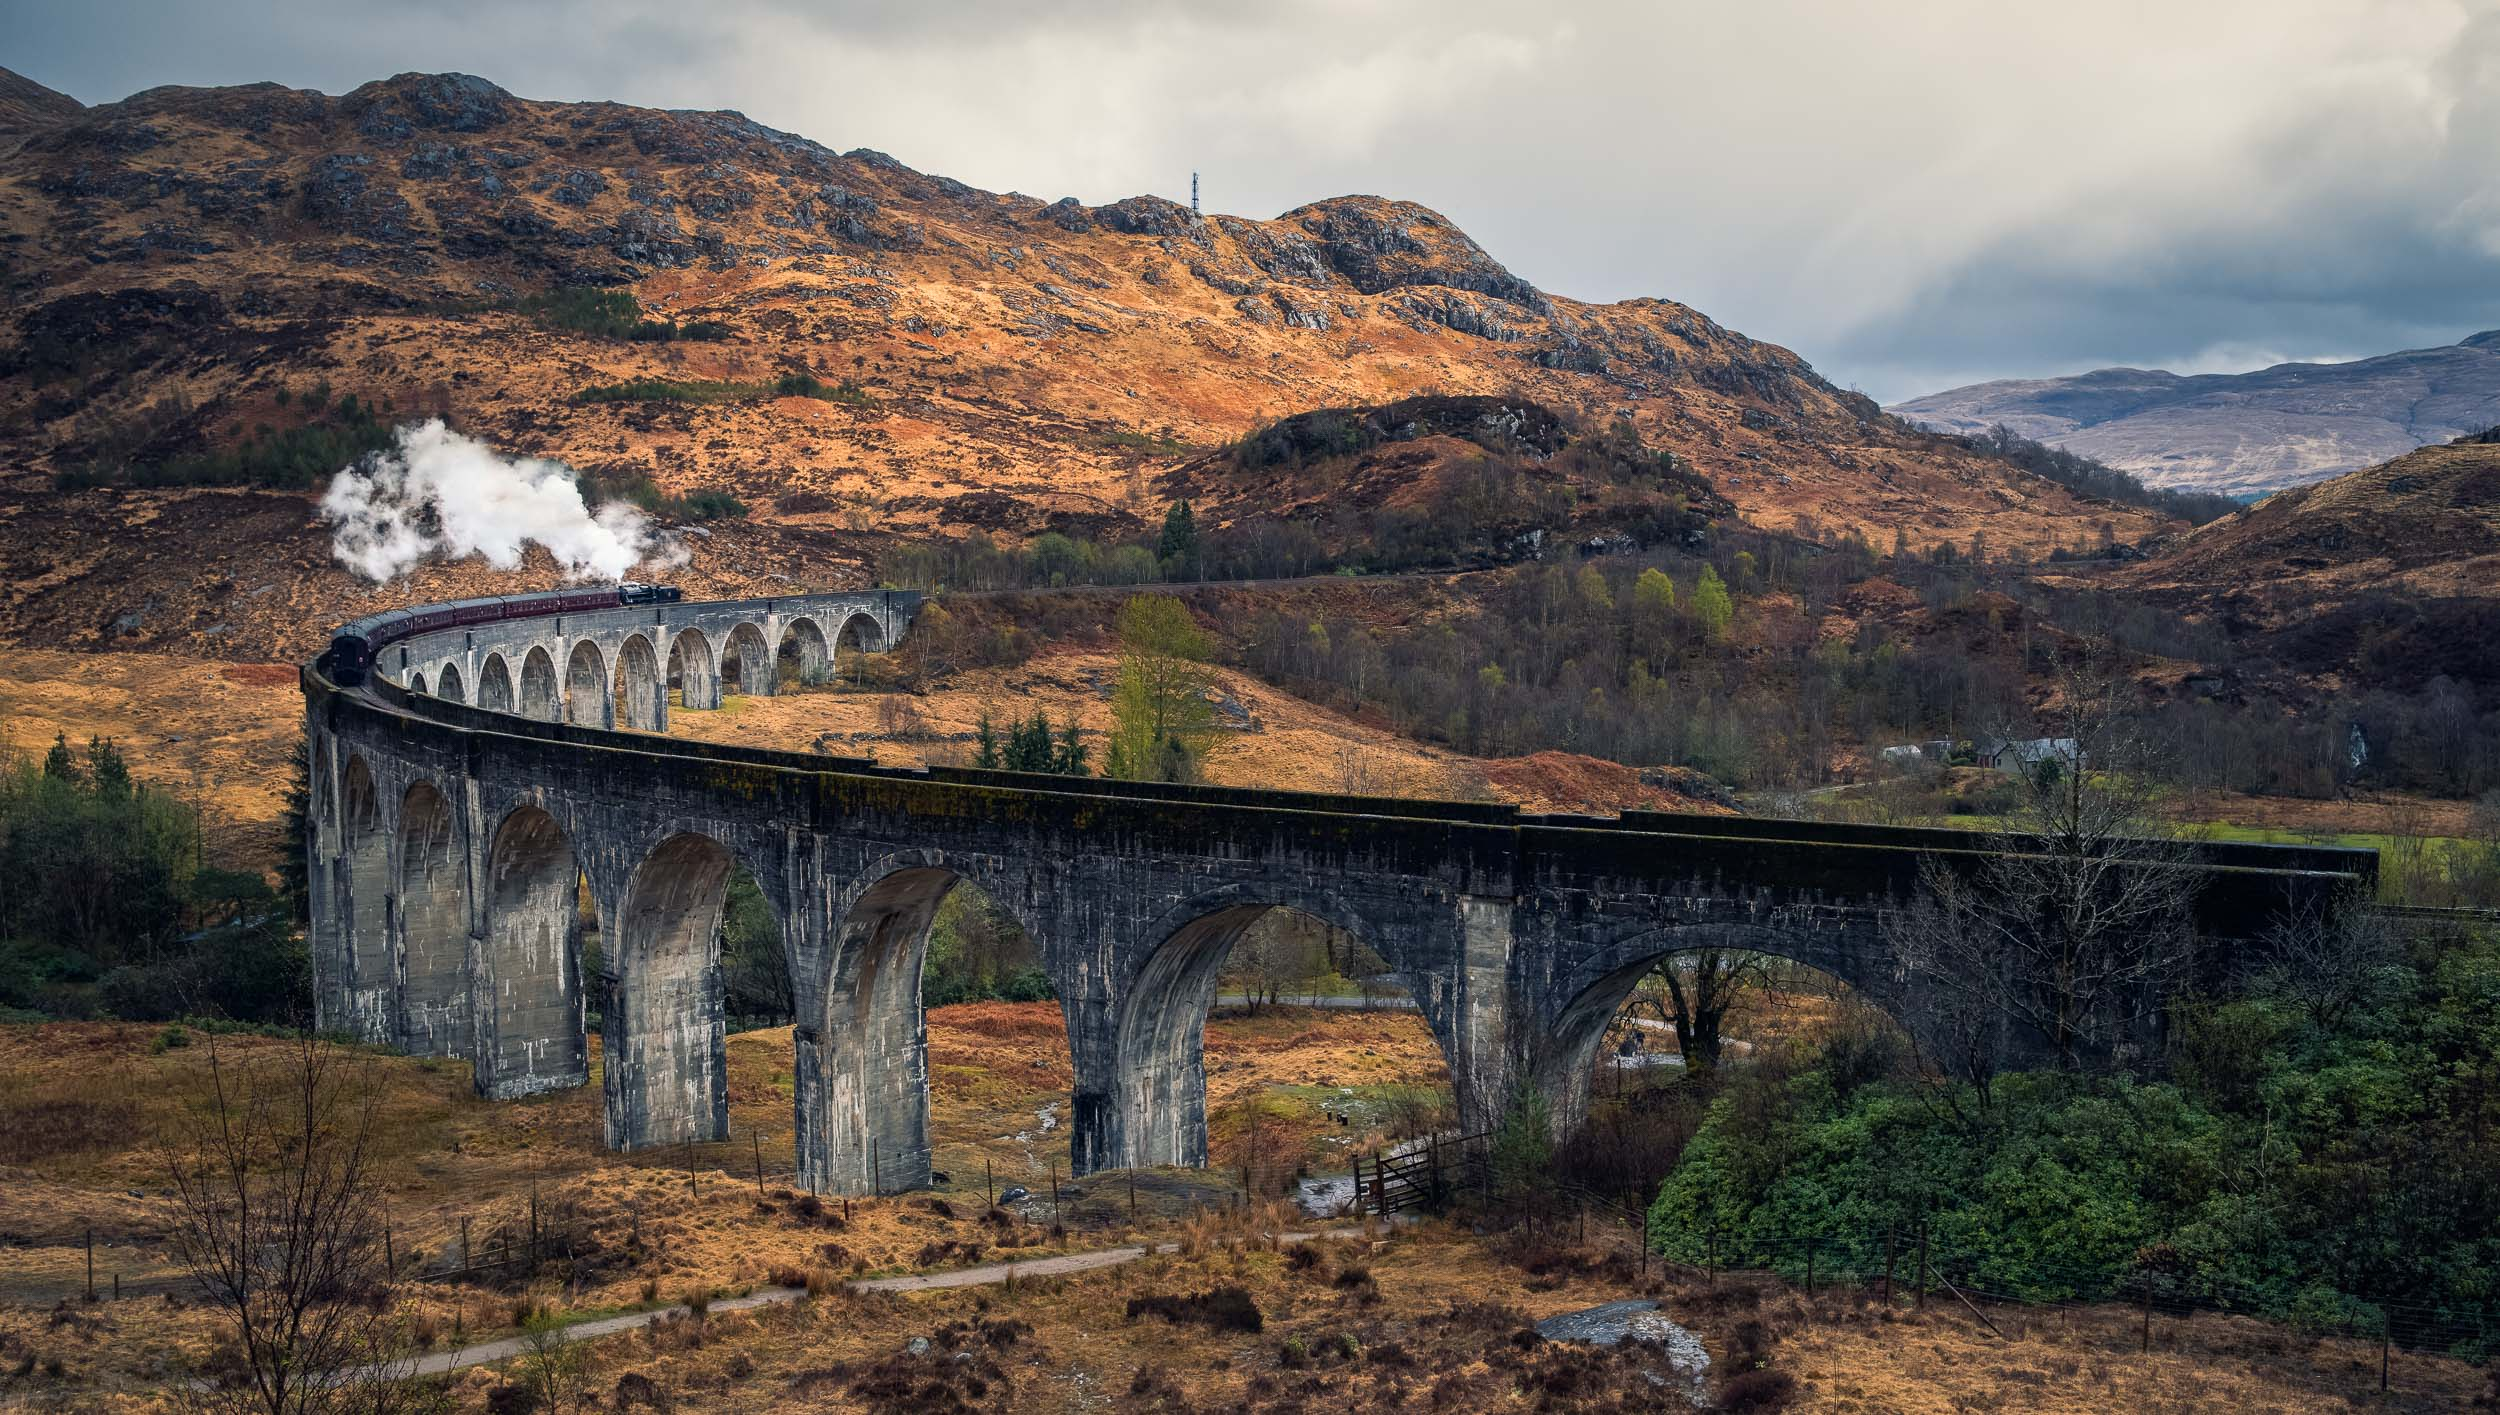 Train Glenfinnan Viaduct - Highlands, Scotland - Landscape Photography